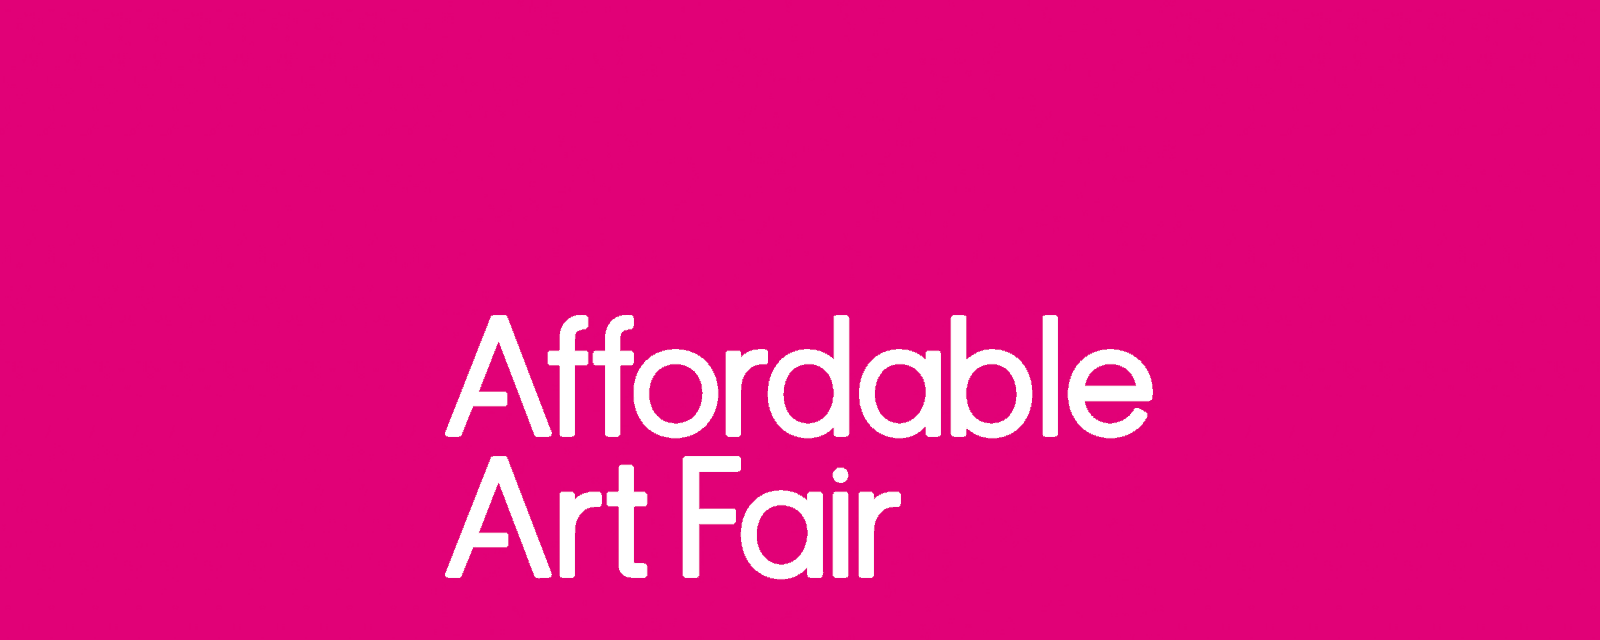 affordable art fair Amsterdam, Gijs Pape